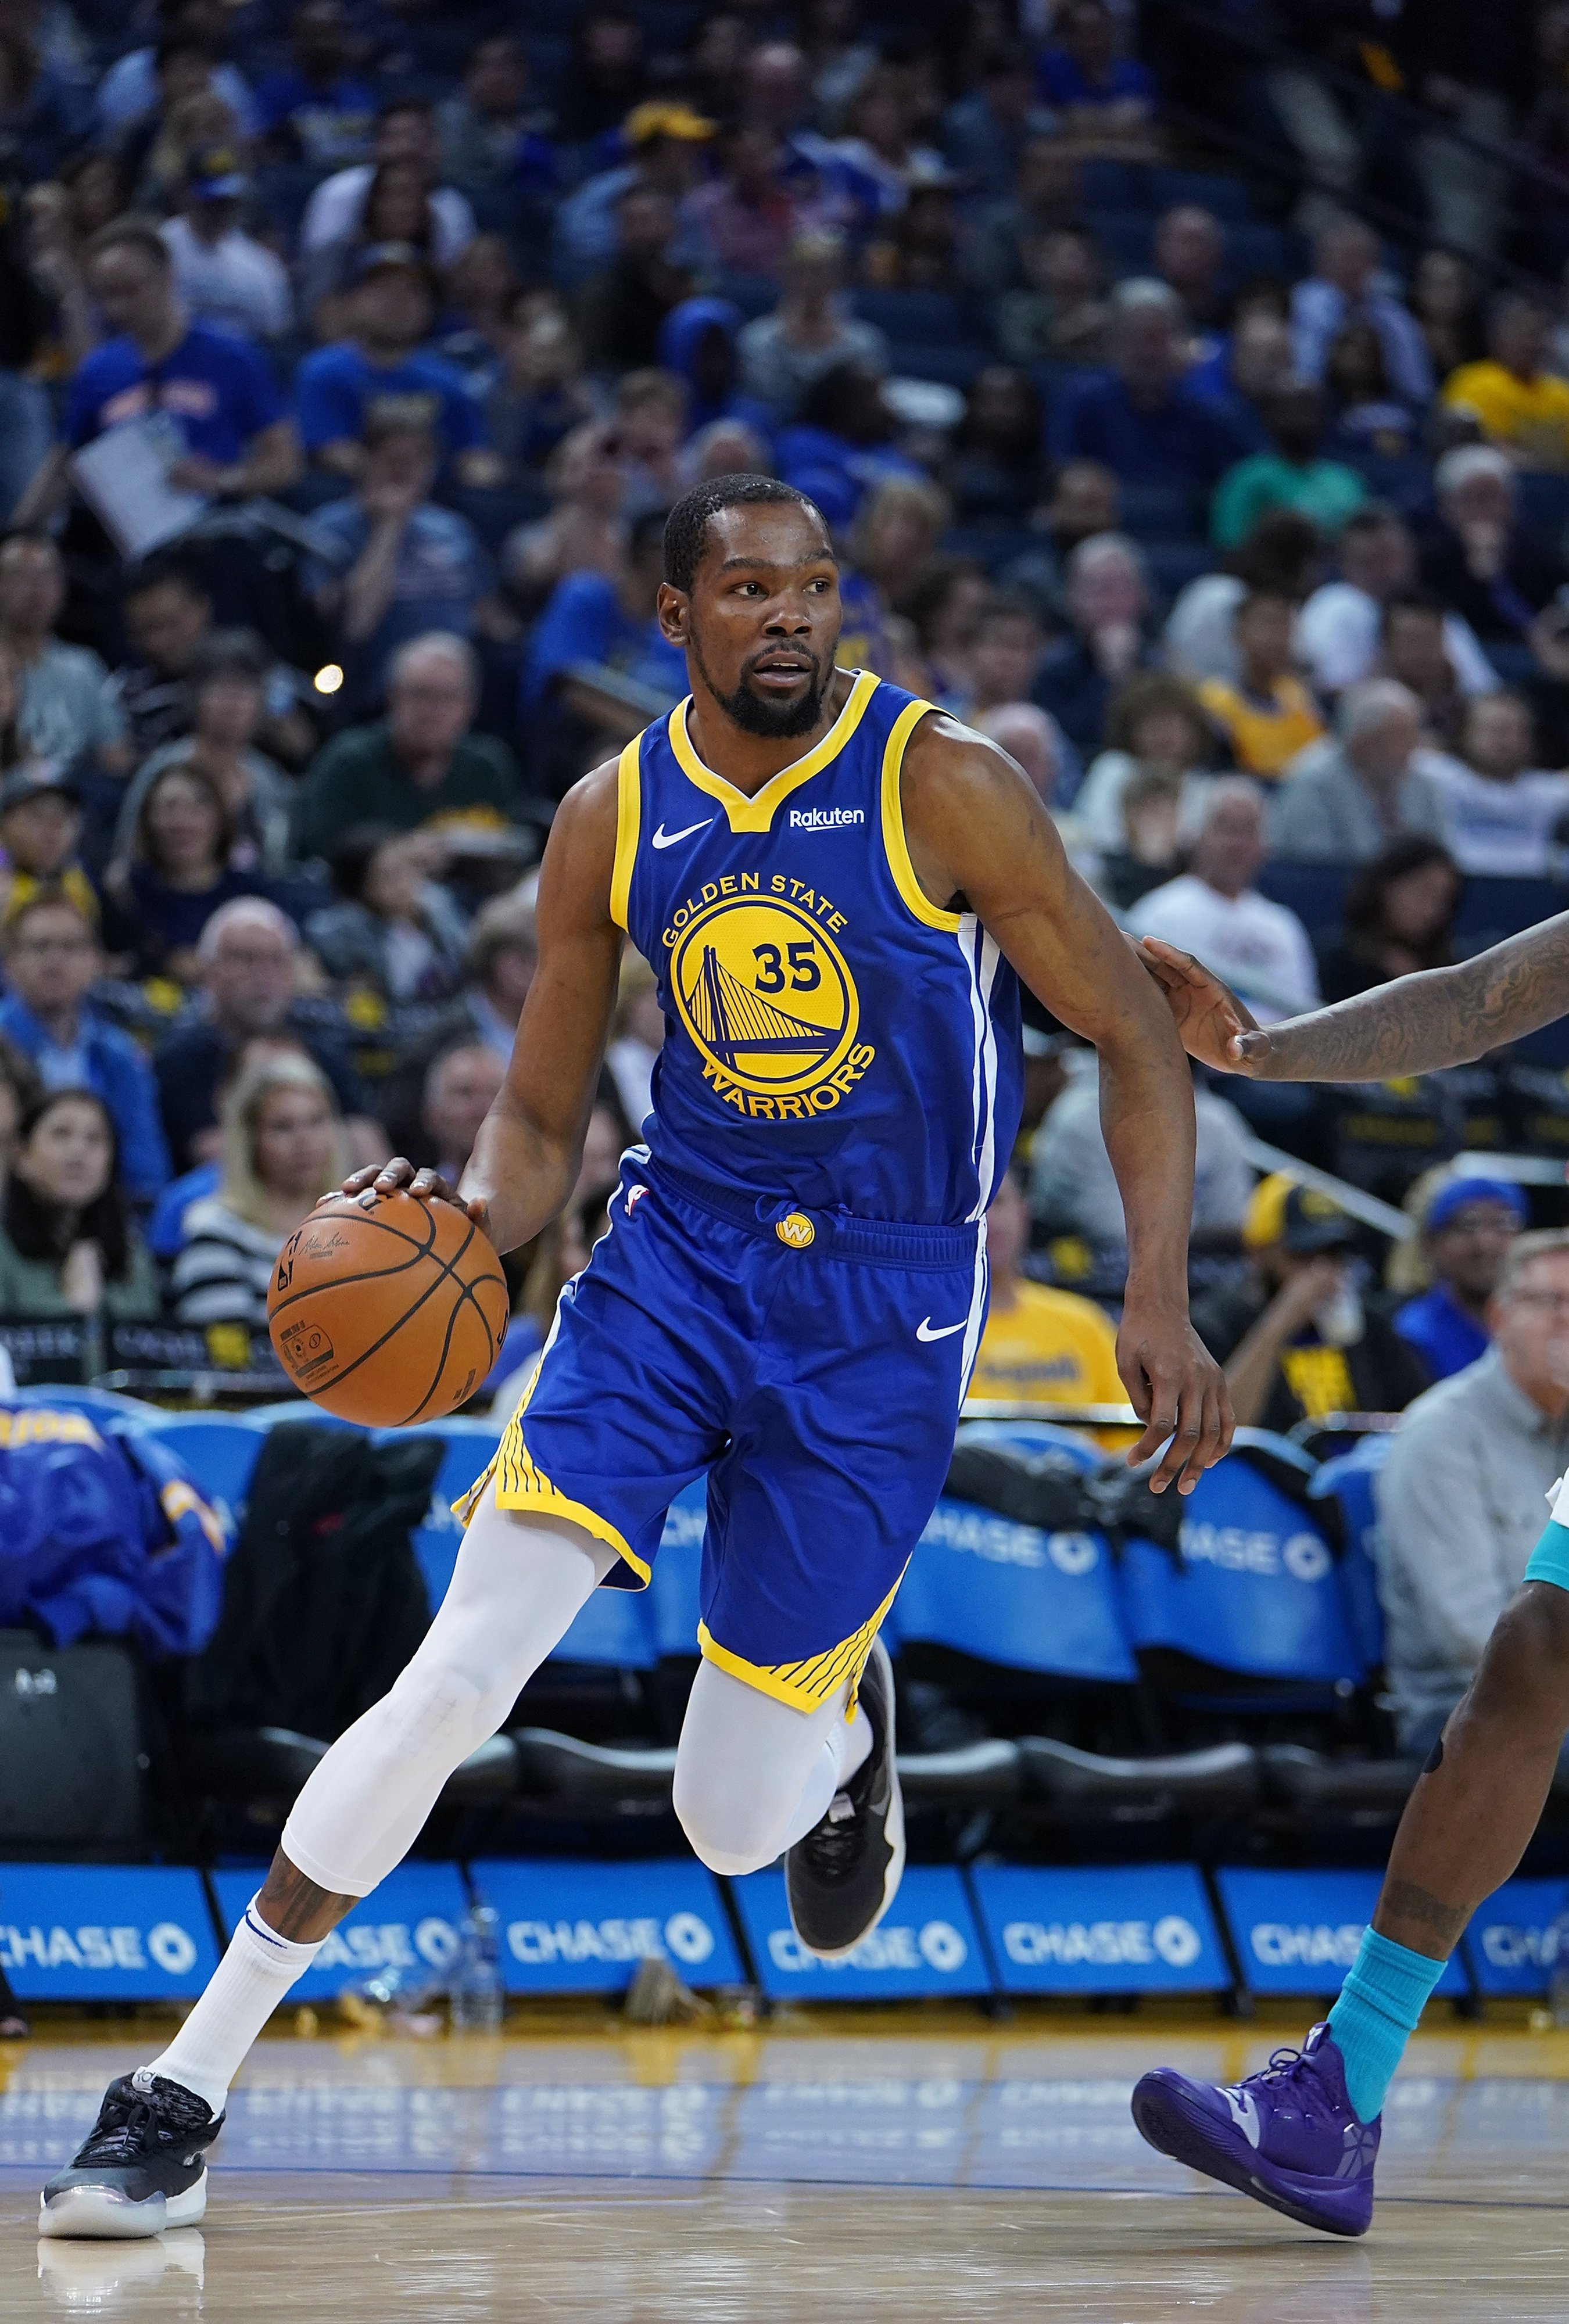 Kevin Durant in action, Basketball player   Photo: Getty Images